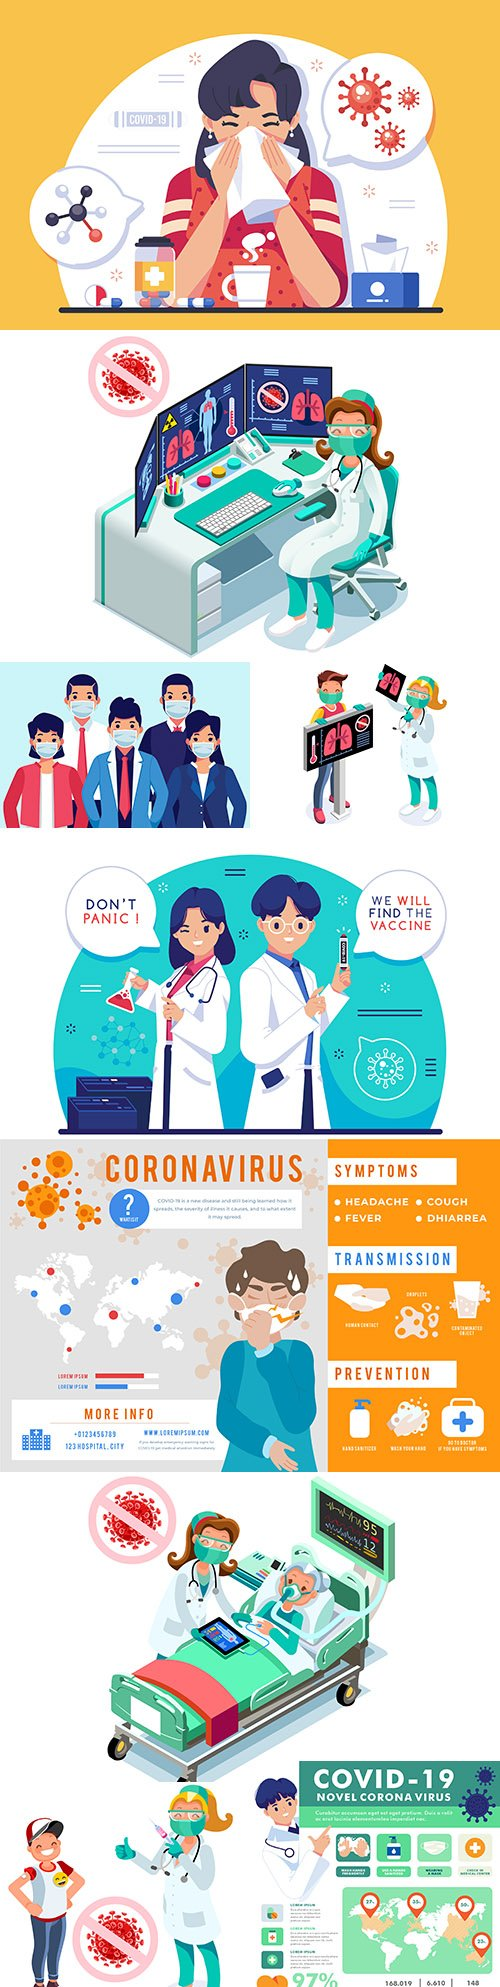 Coronavirus symptoms and first signs medical examination